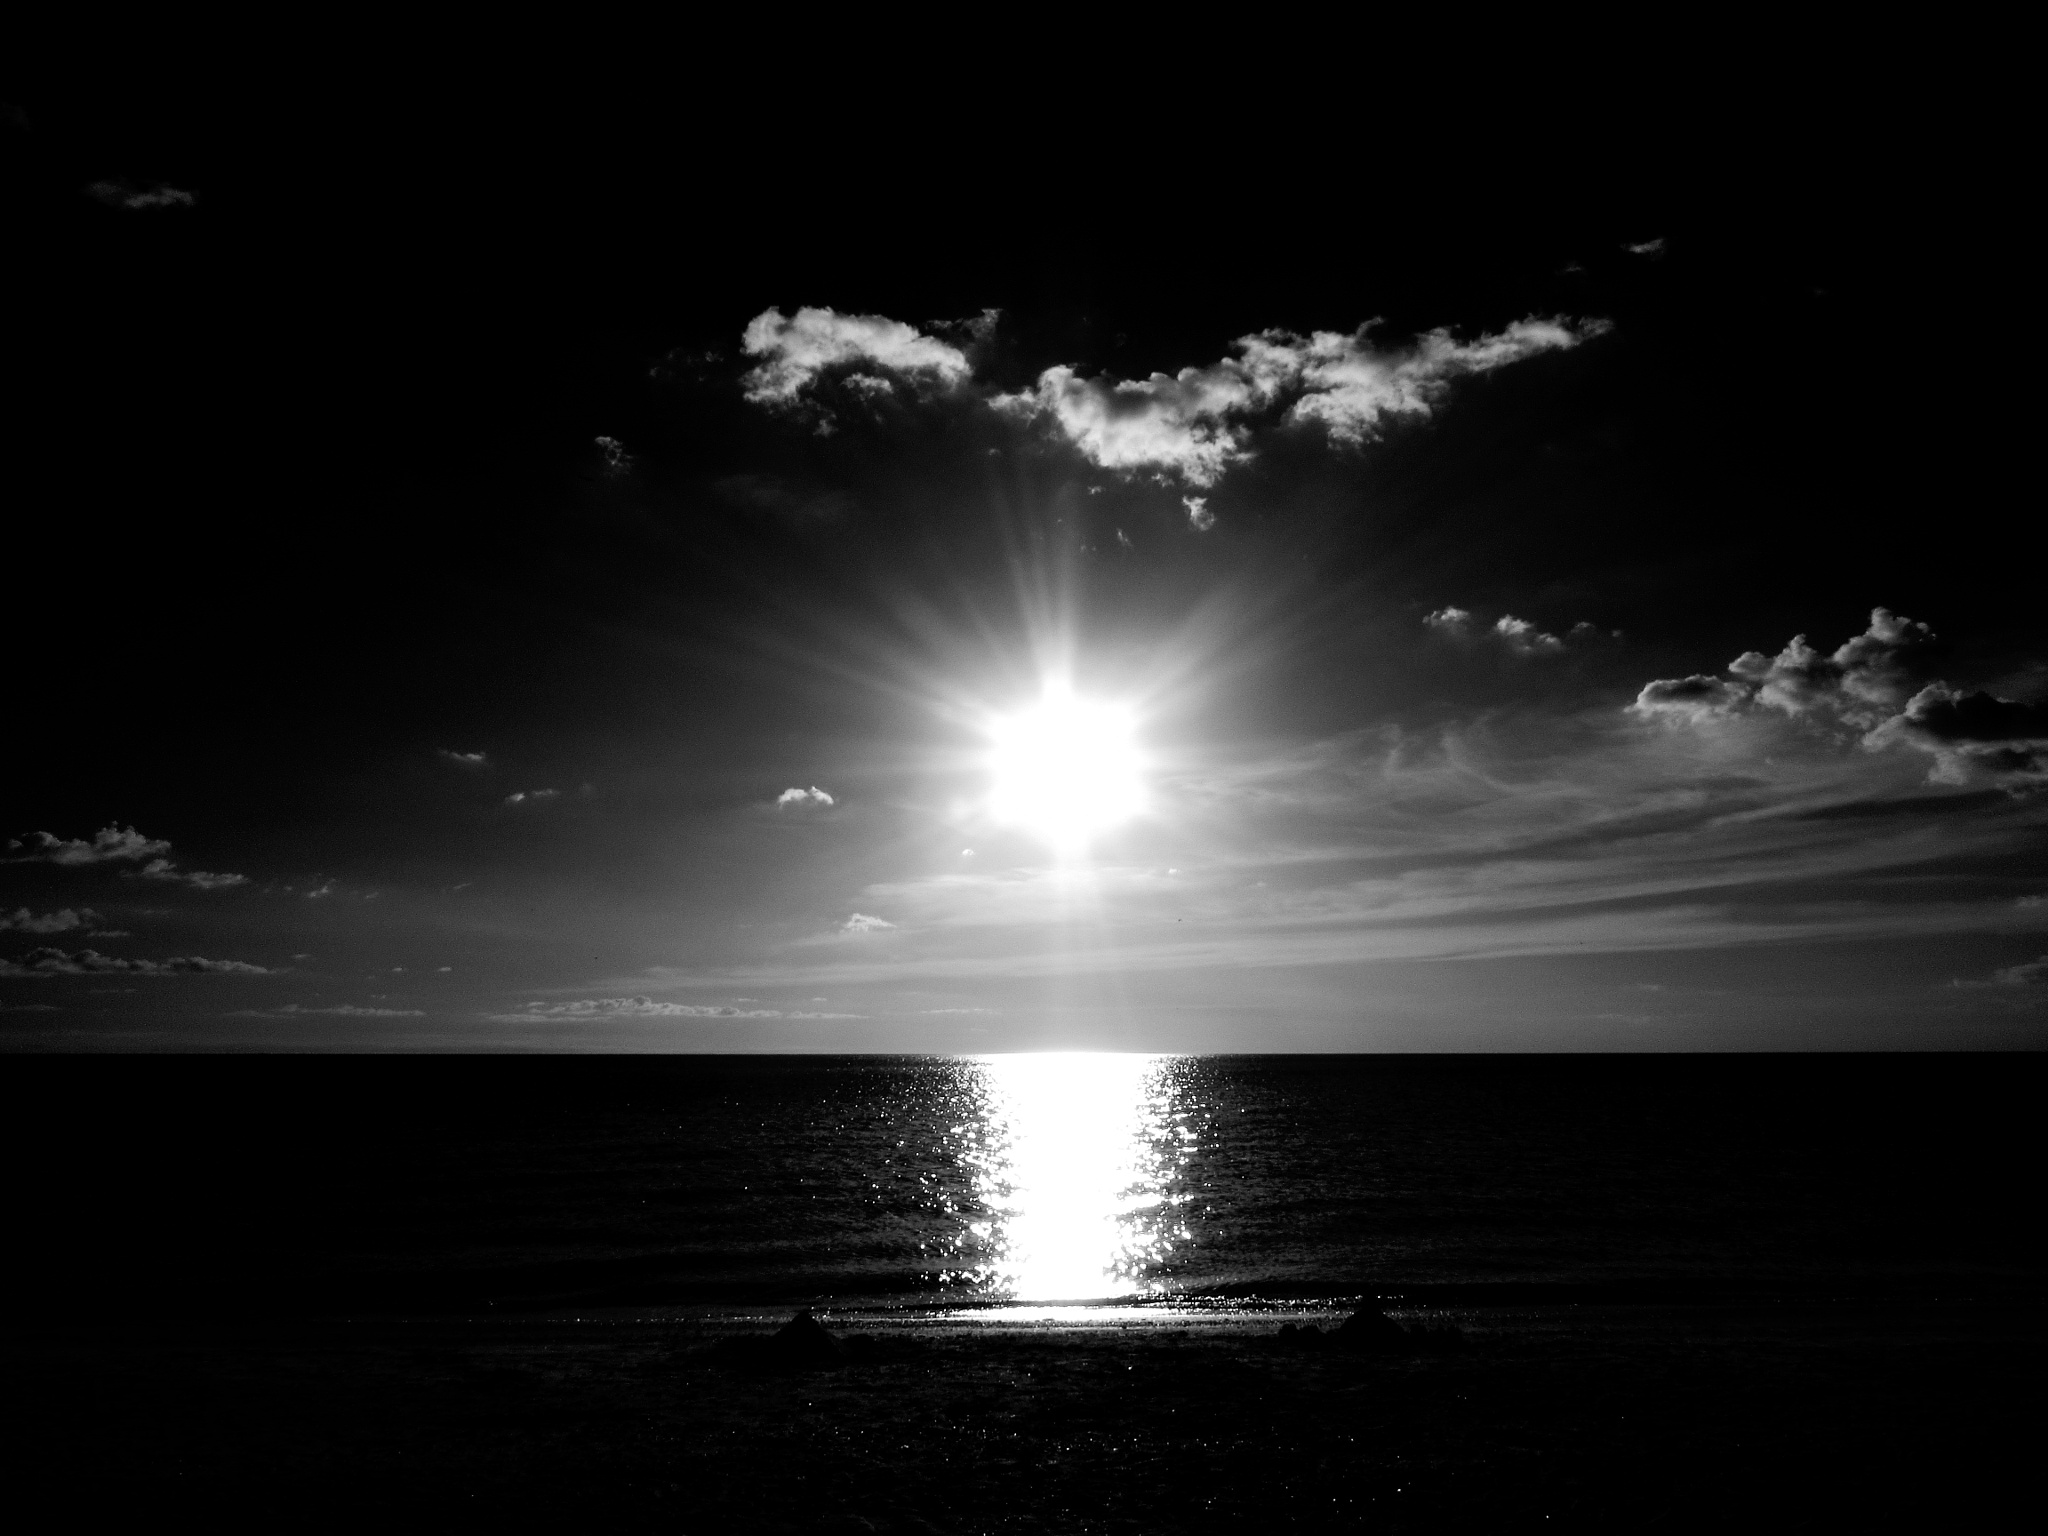 Monochrome Sunset by Todd